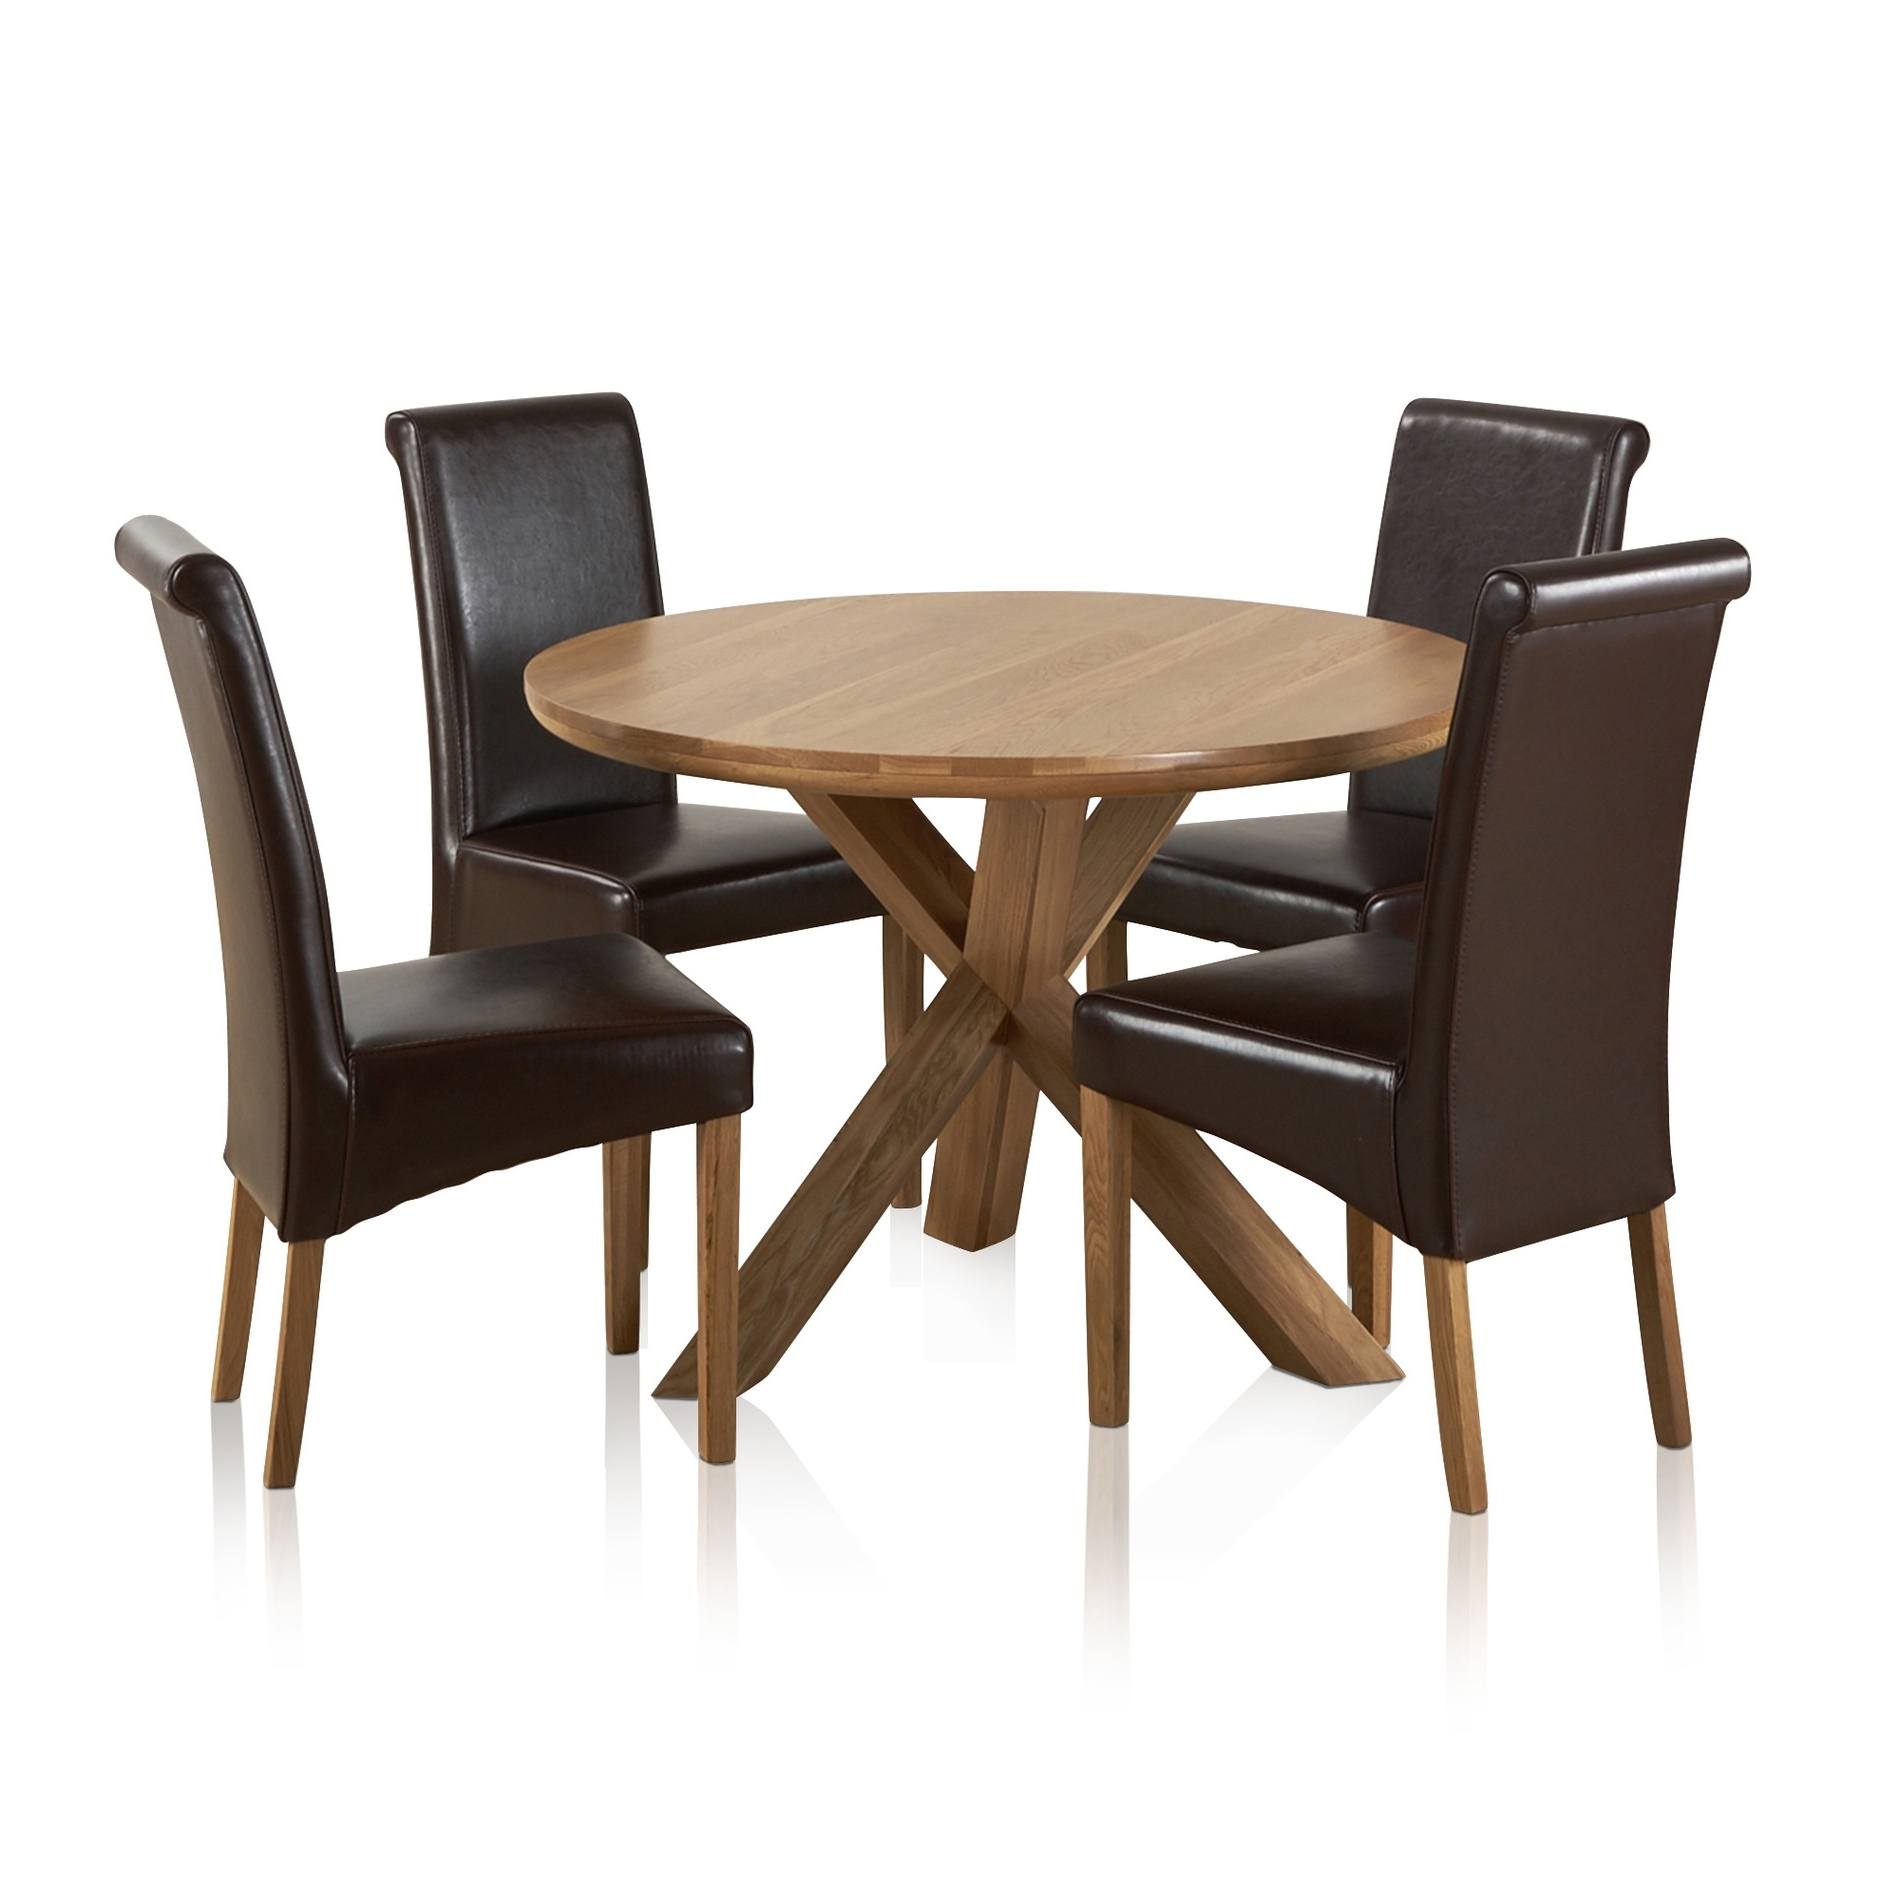 Cheap Oak Dining Sets Intended For Recent Natural Real Oak Dining Set: Round Table + 4 Brown Leather Chairs (View 8 of 25)